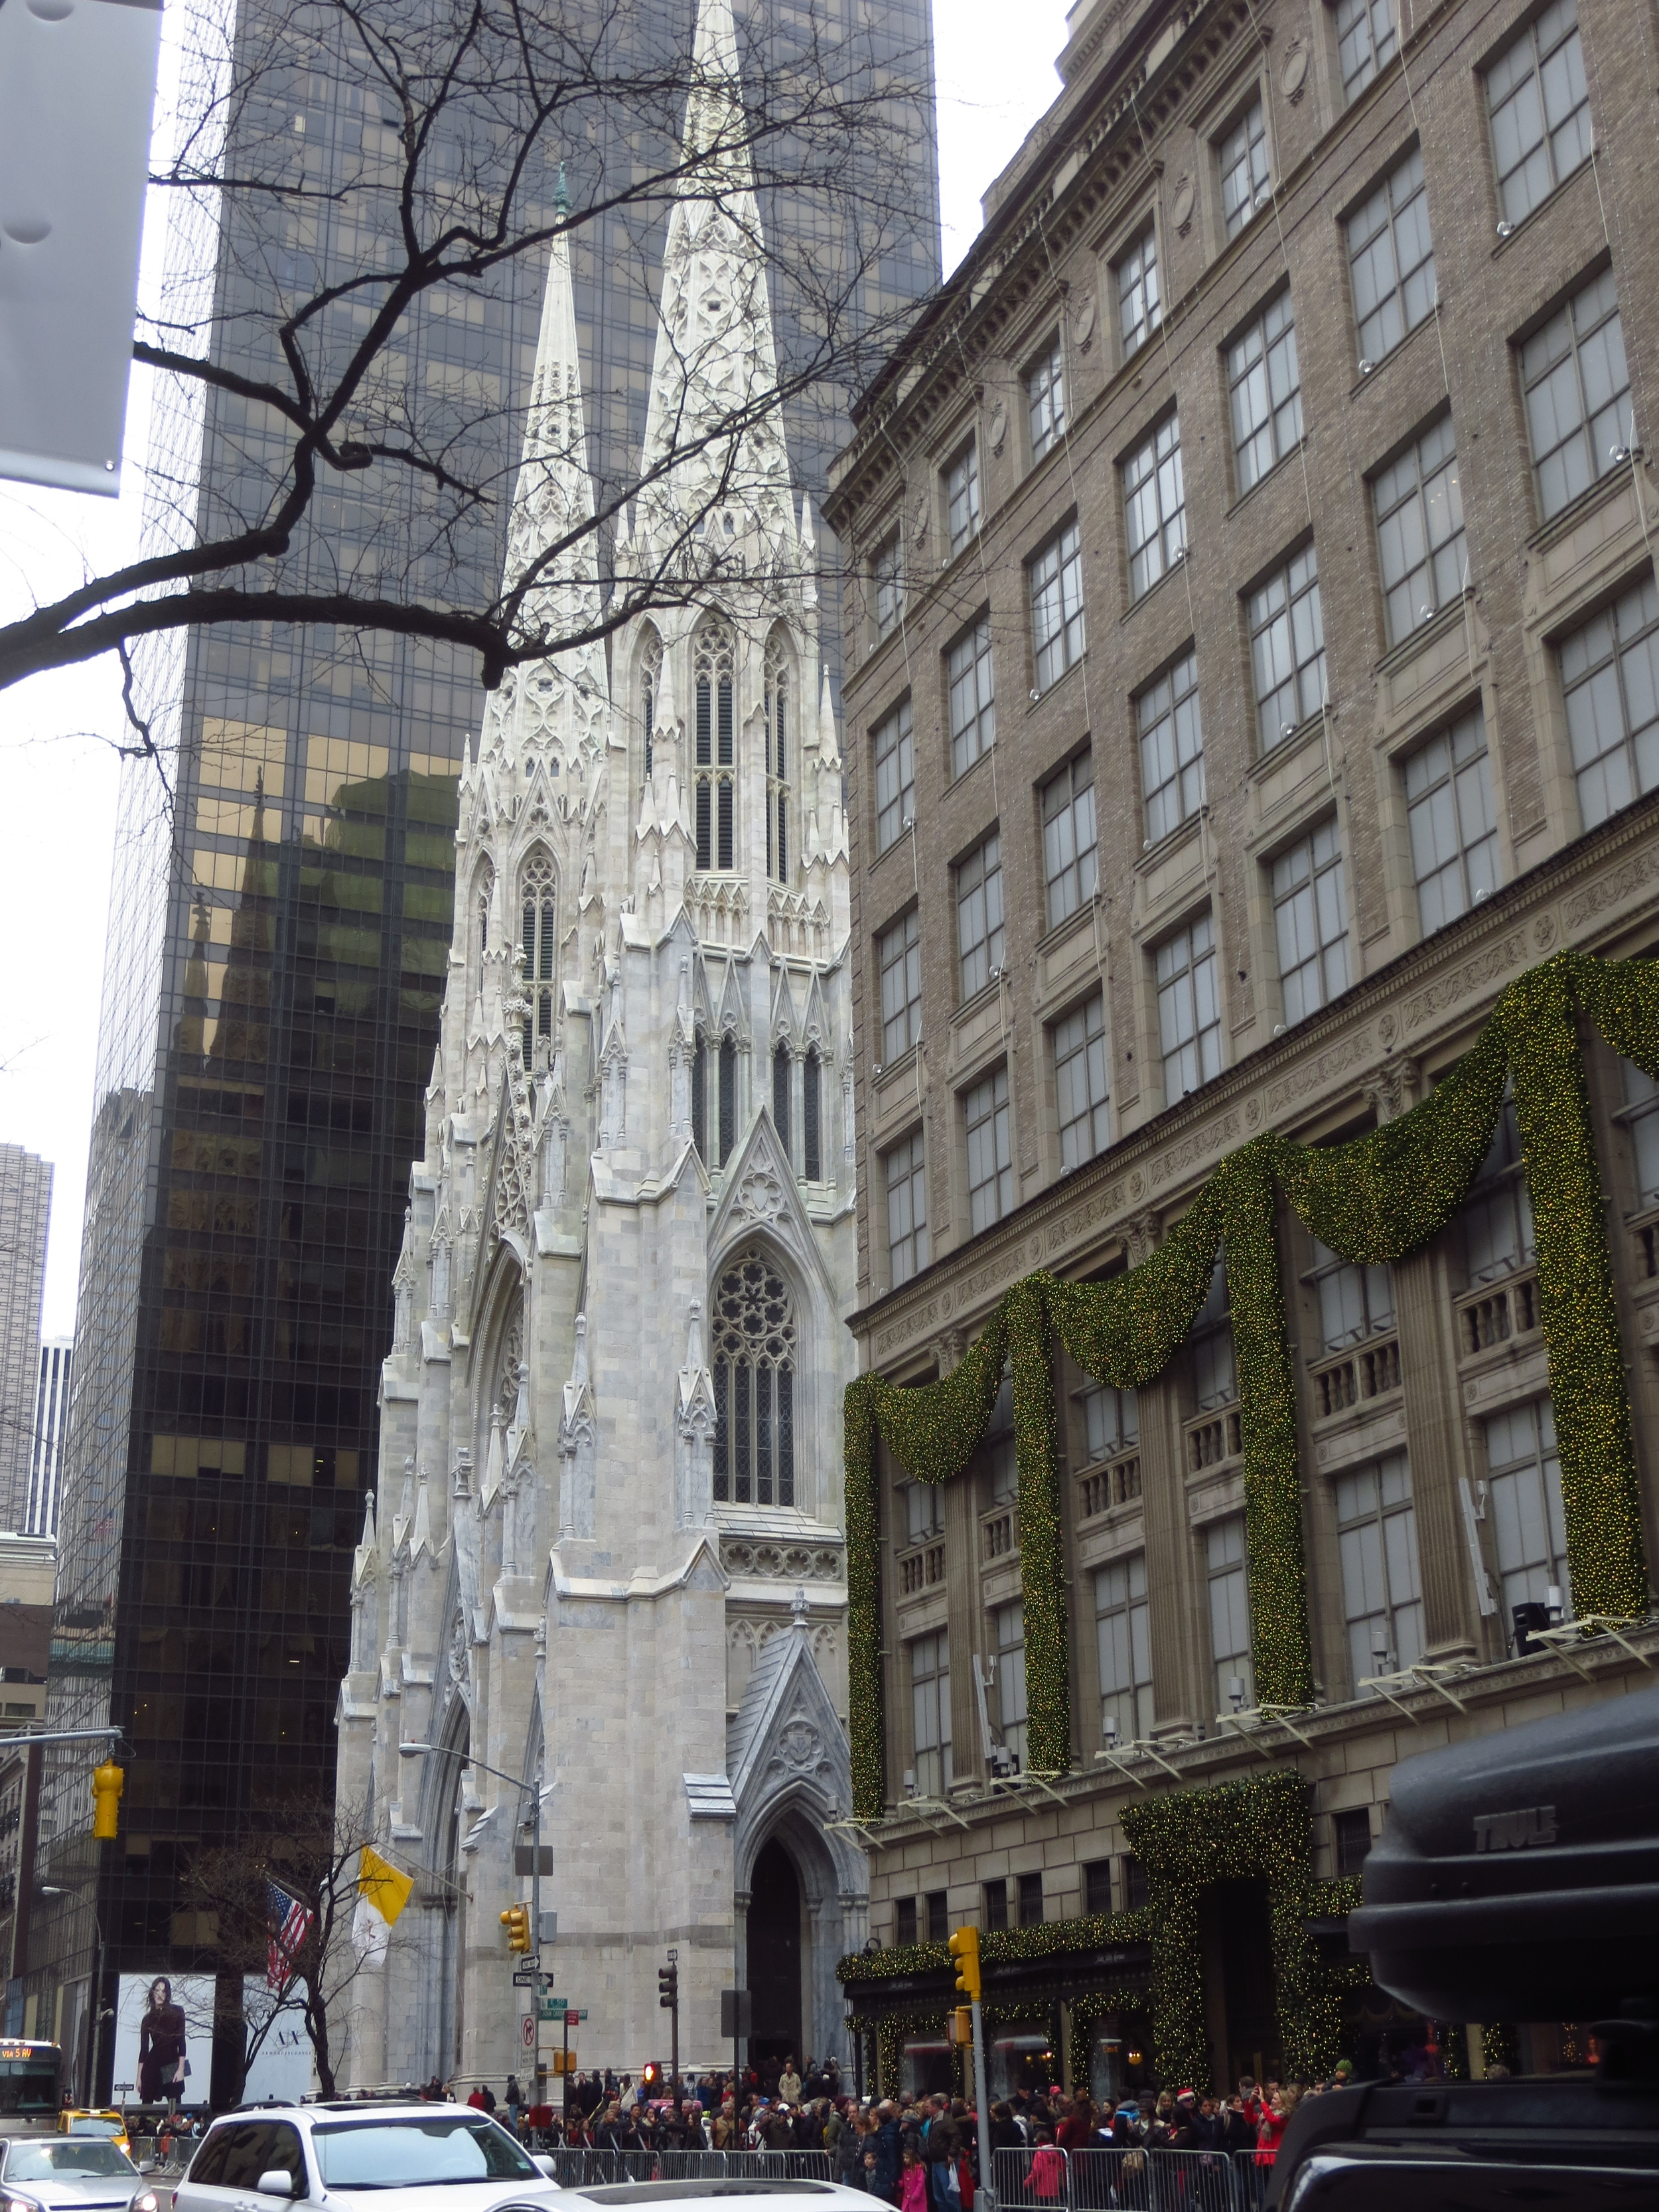 St. Patrick's Cathedral and Sak's